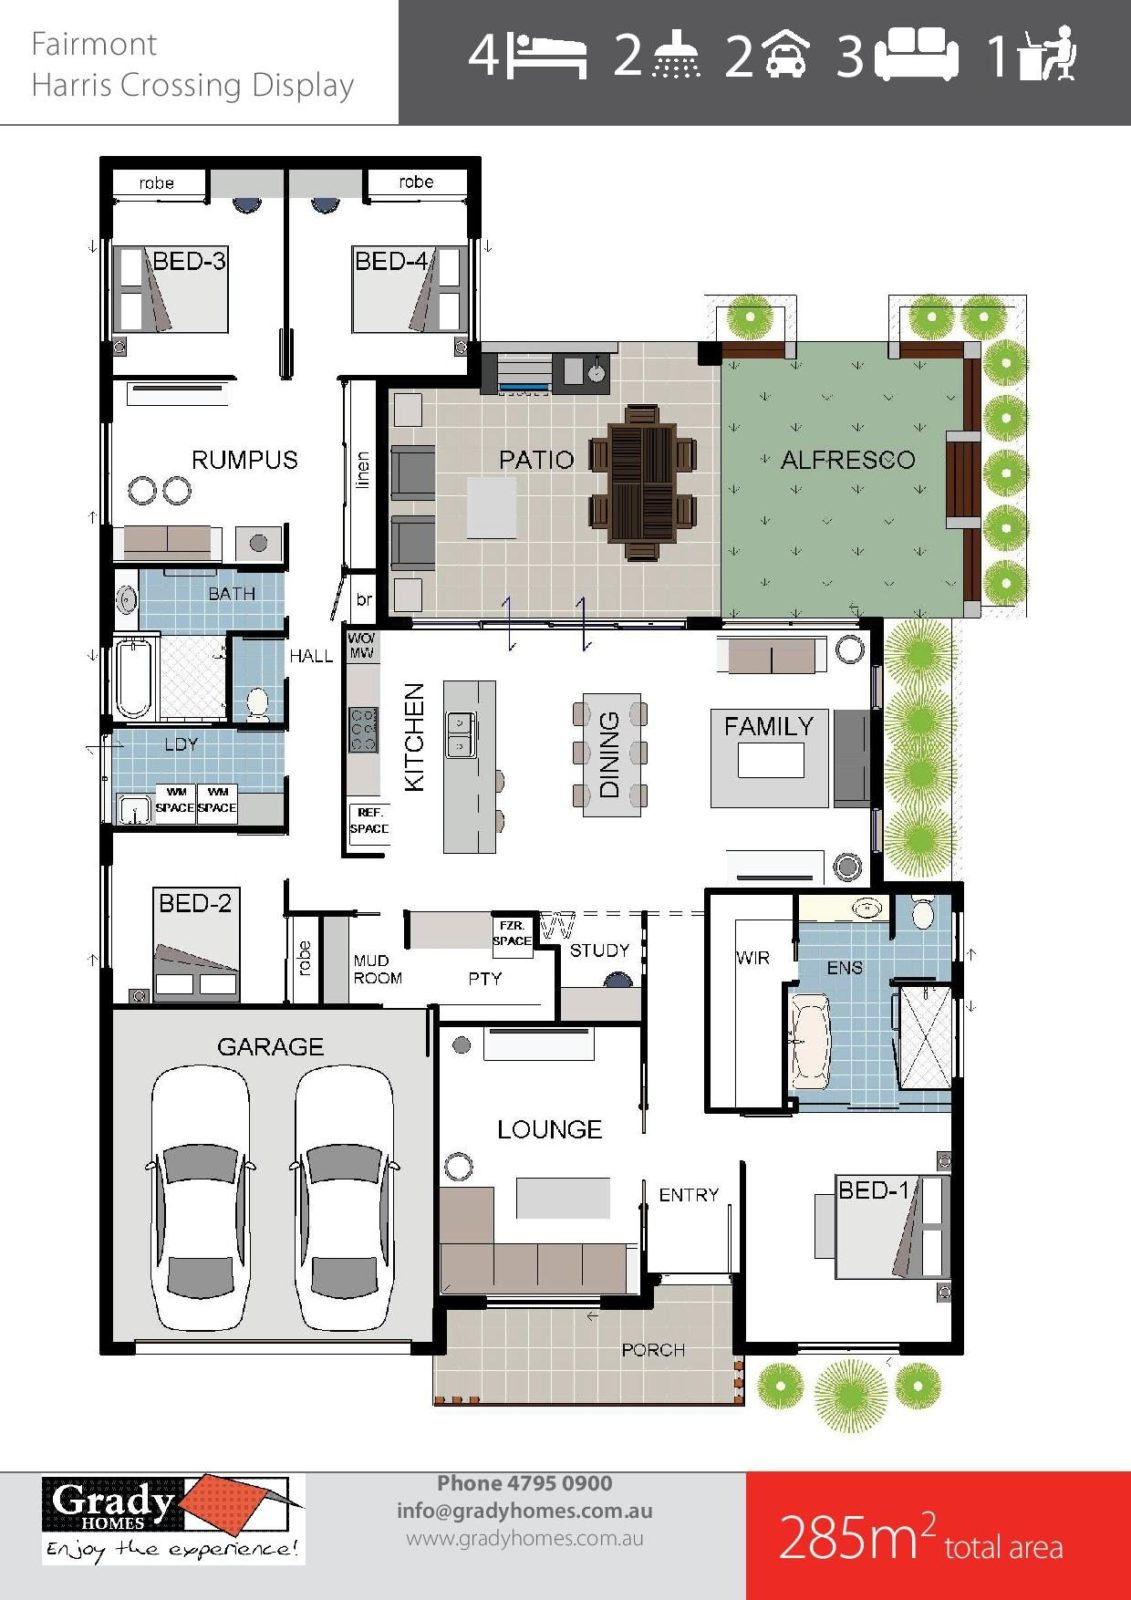 Fairmont Display Grady Homes Floor Plan 1